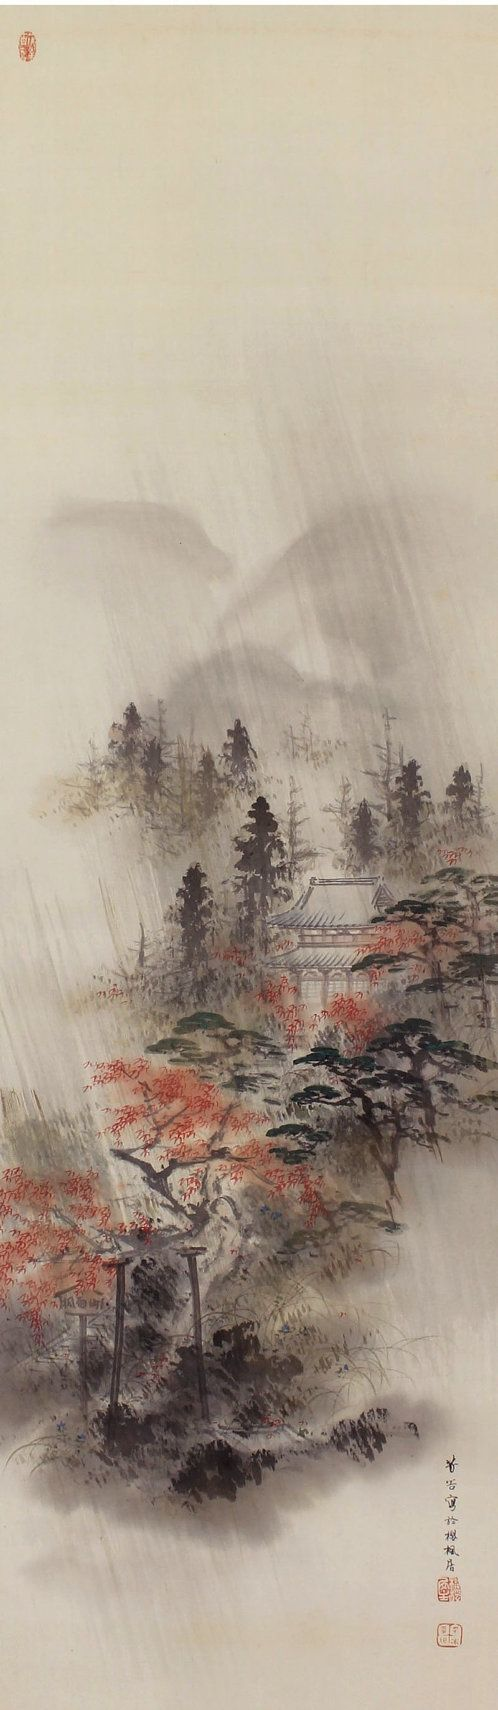 Japanese Fine Art Wall Hanging Scroll Painting от SakuraAntiques